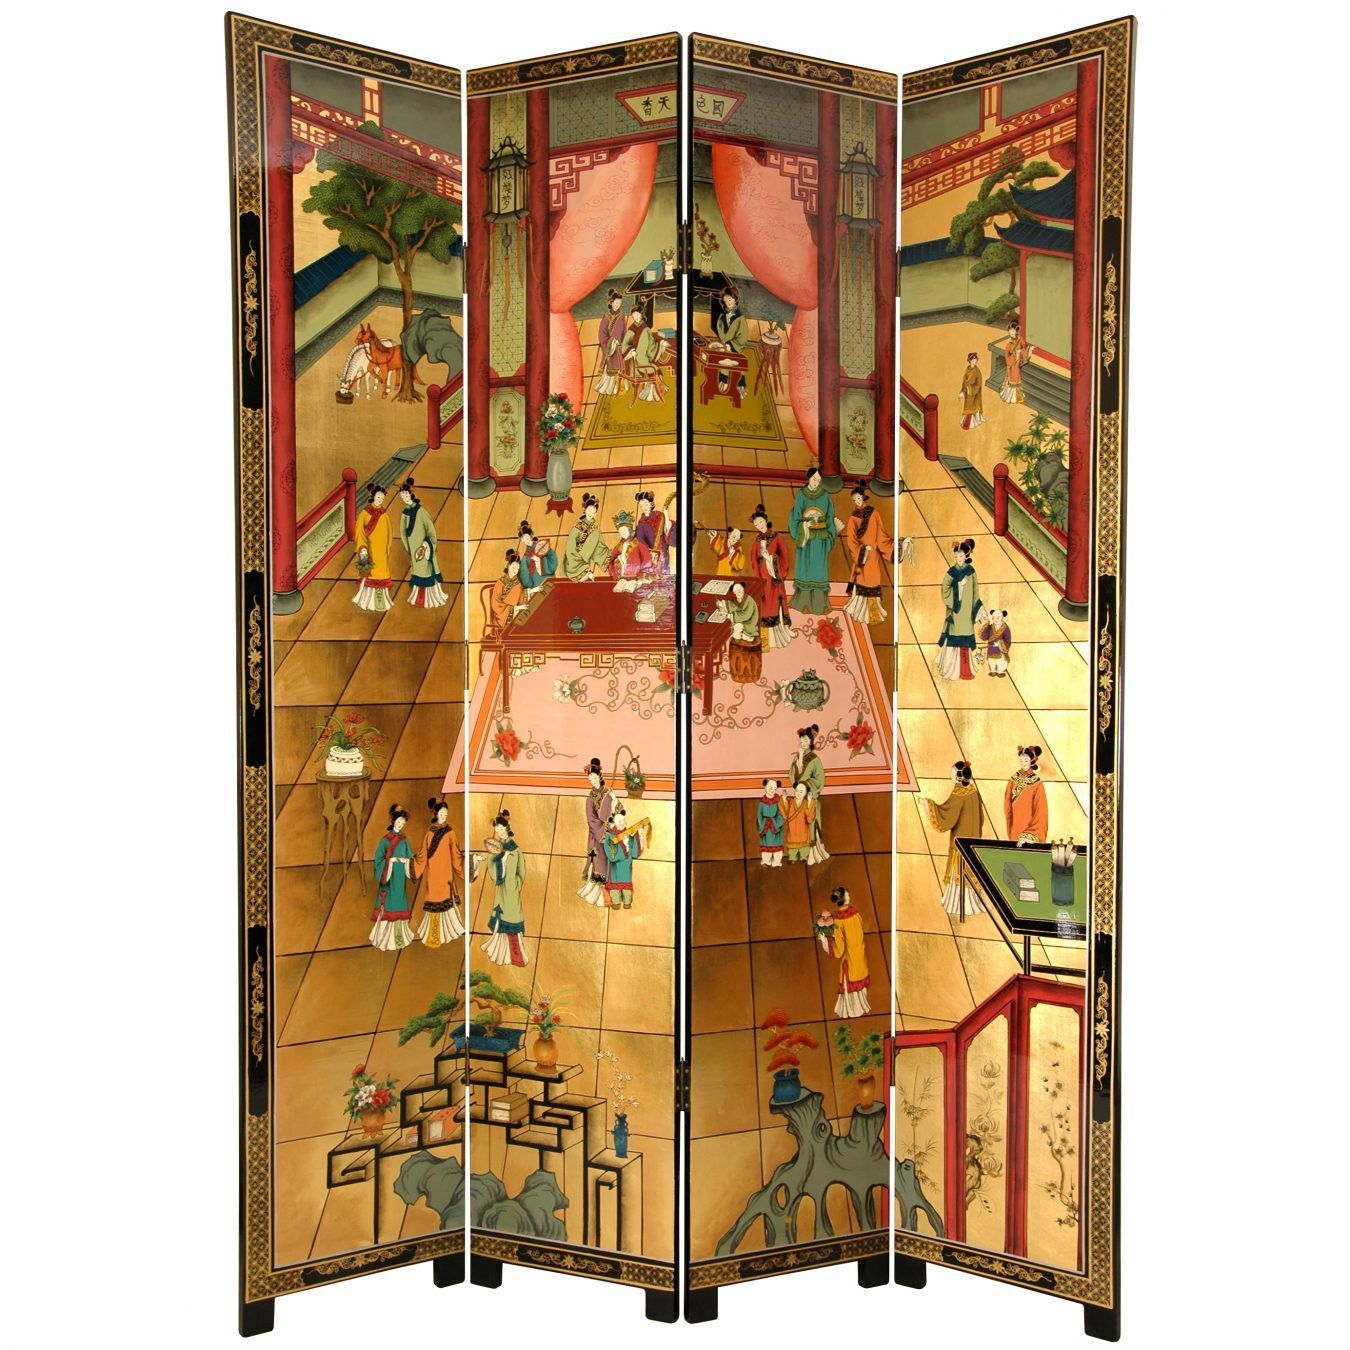 7 ft tall dream of the red chamber screen orientalfurniture com rh pinterest com